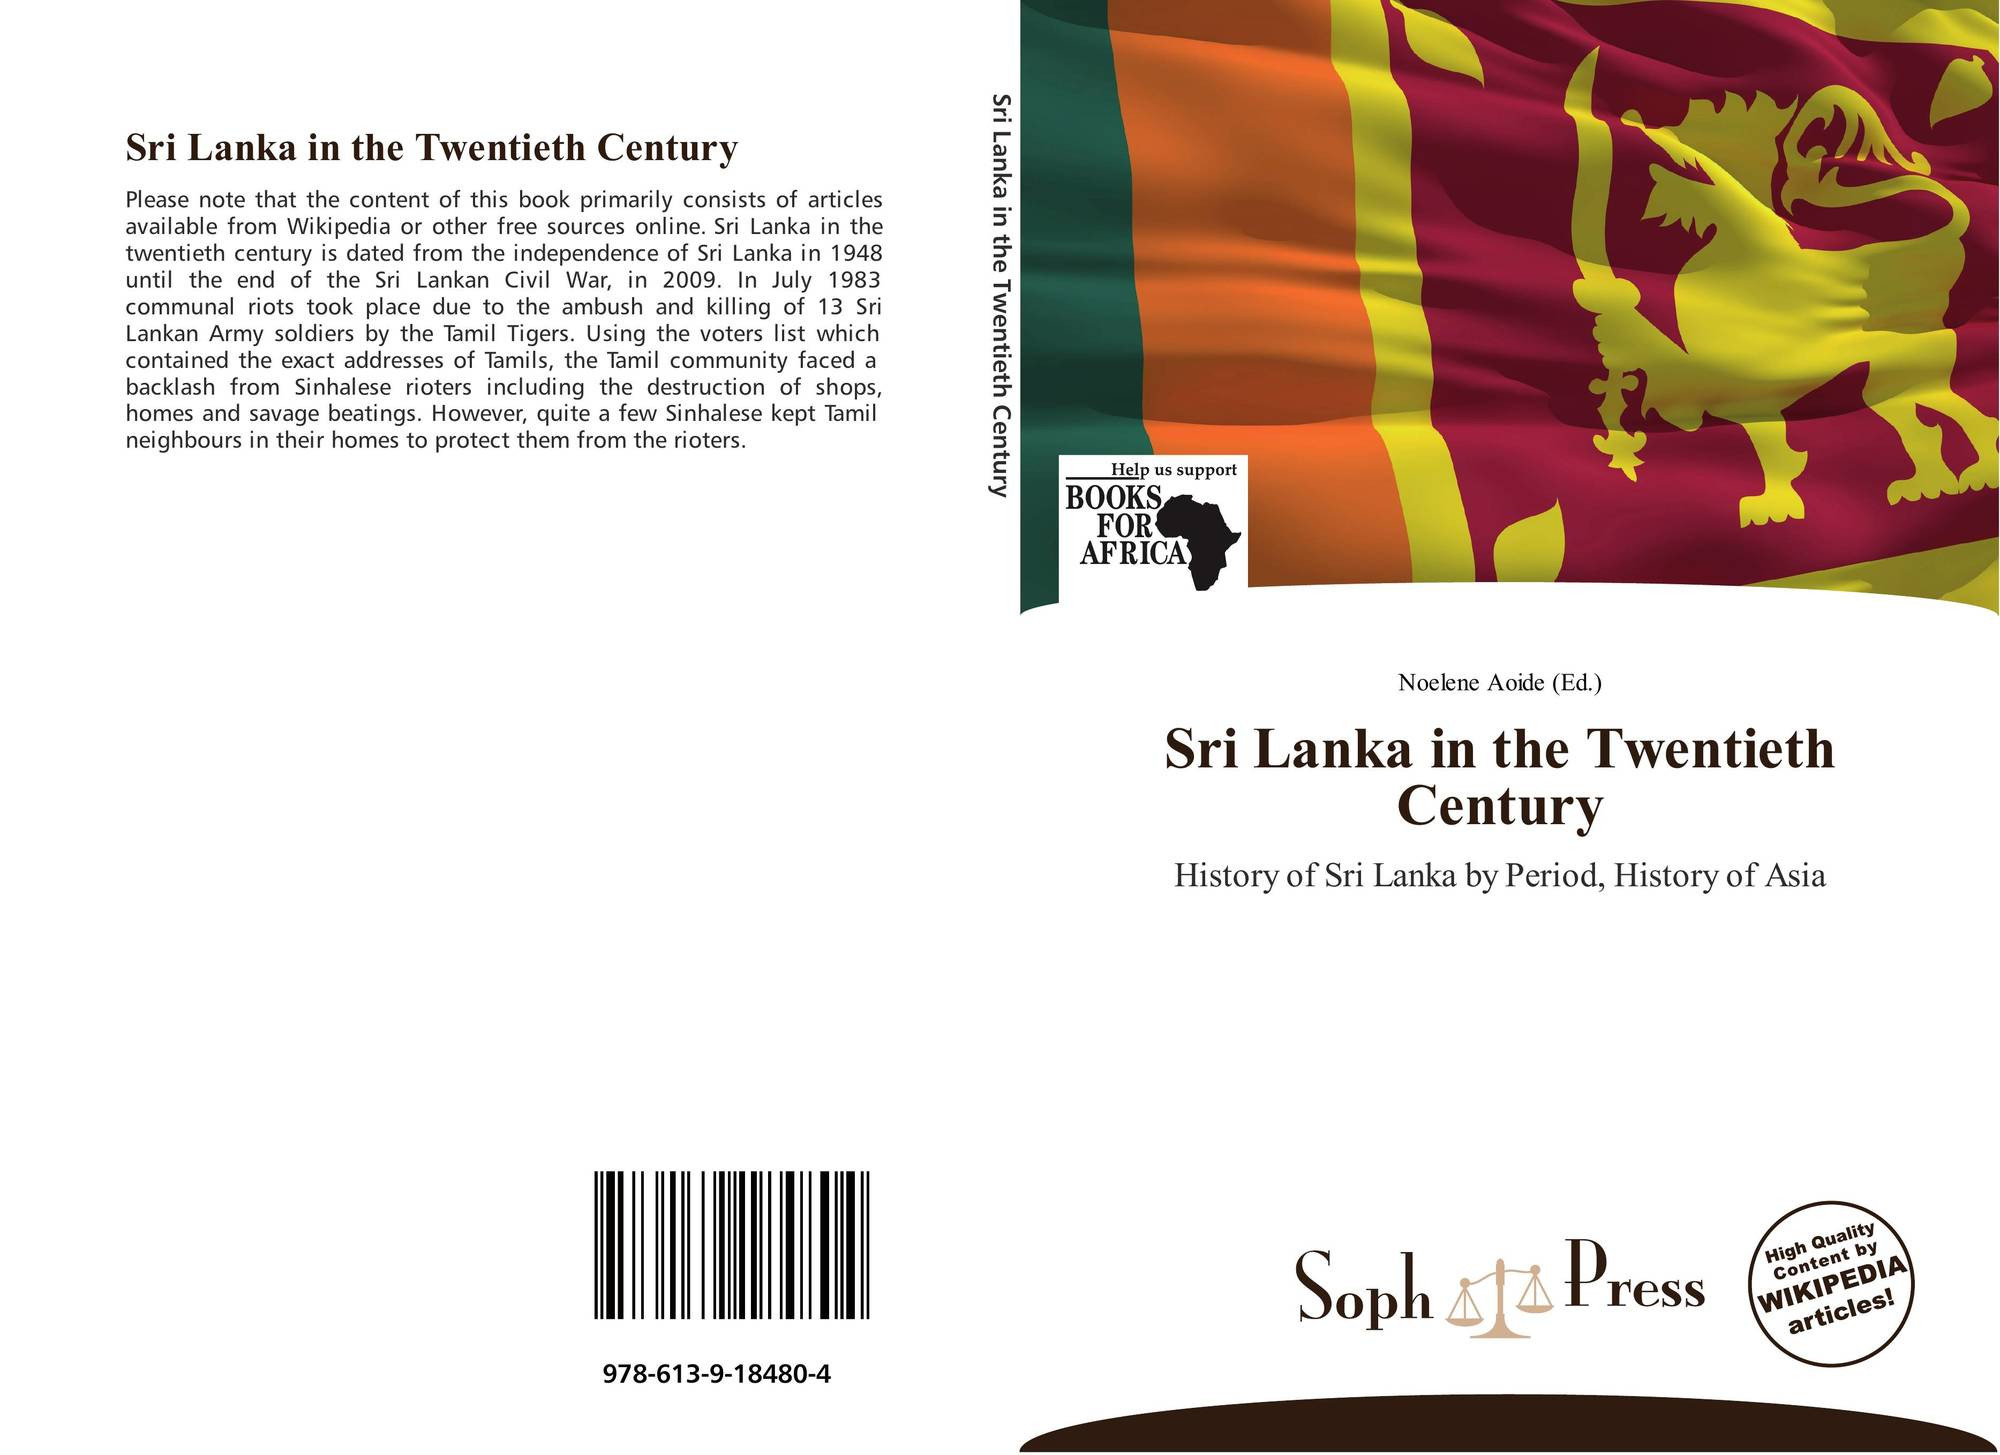 history of the sri lankan problem sociology essay These sri lanka facts and statistics provide a good overview of the reality of poverty and how compassion is releasing children from poverty in jesus' name poverty is a common problem in the country of sri lanka but compassion is working to change this.